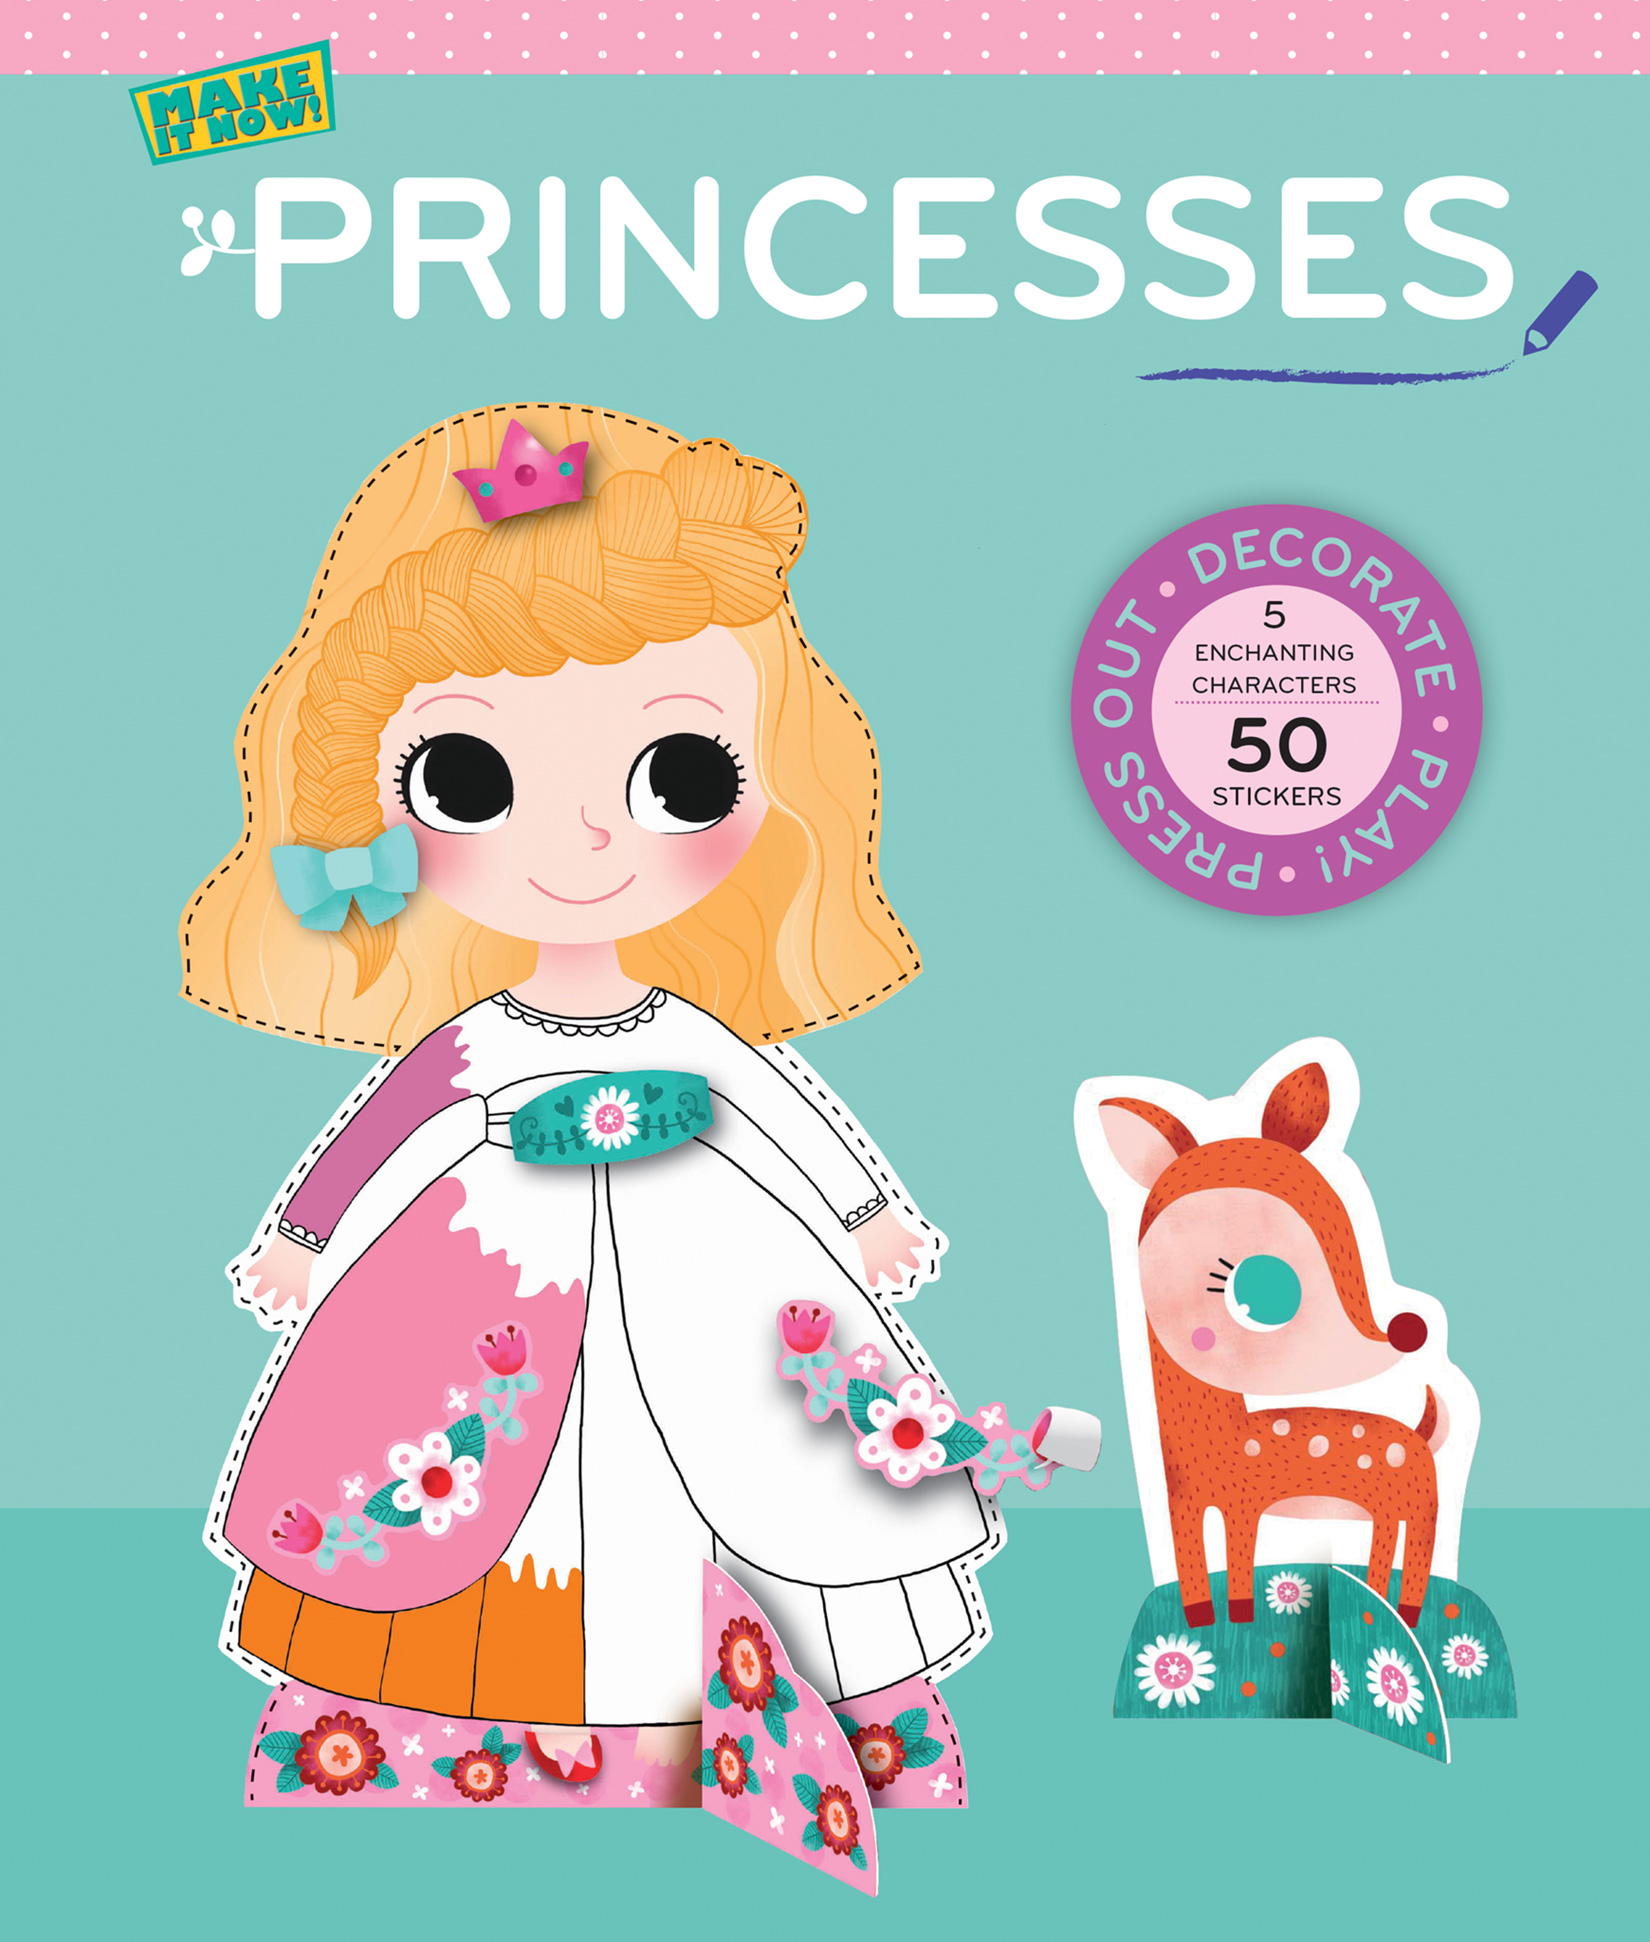 Princesses-(Make-It-Now!)_Rousseau_9781328714985_hres.jpg